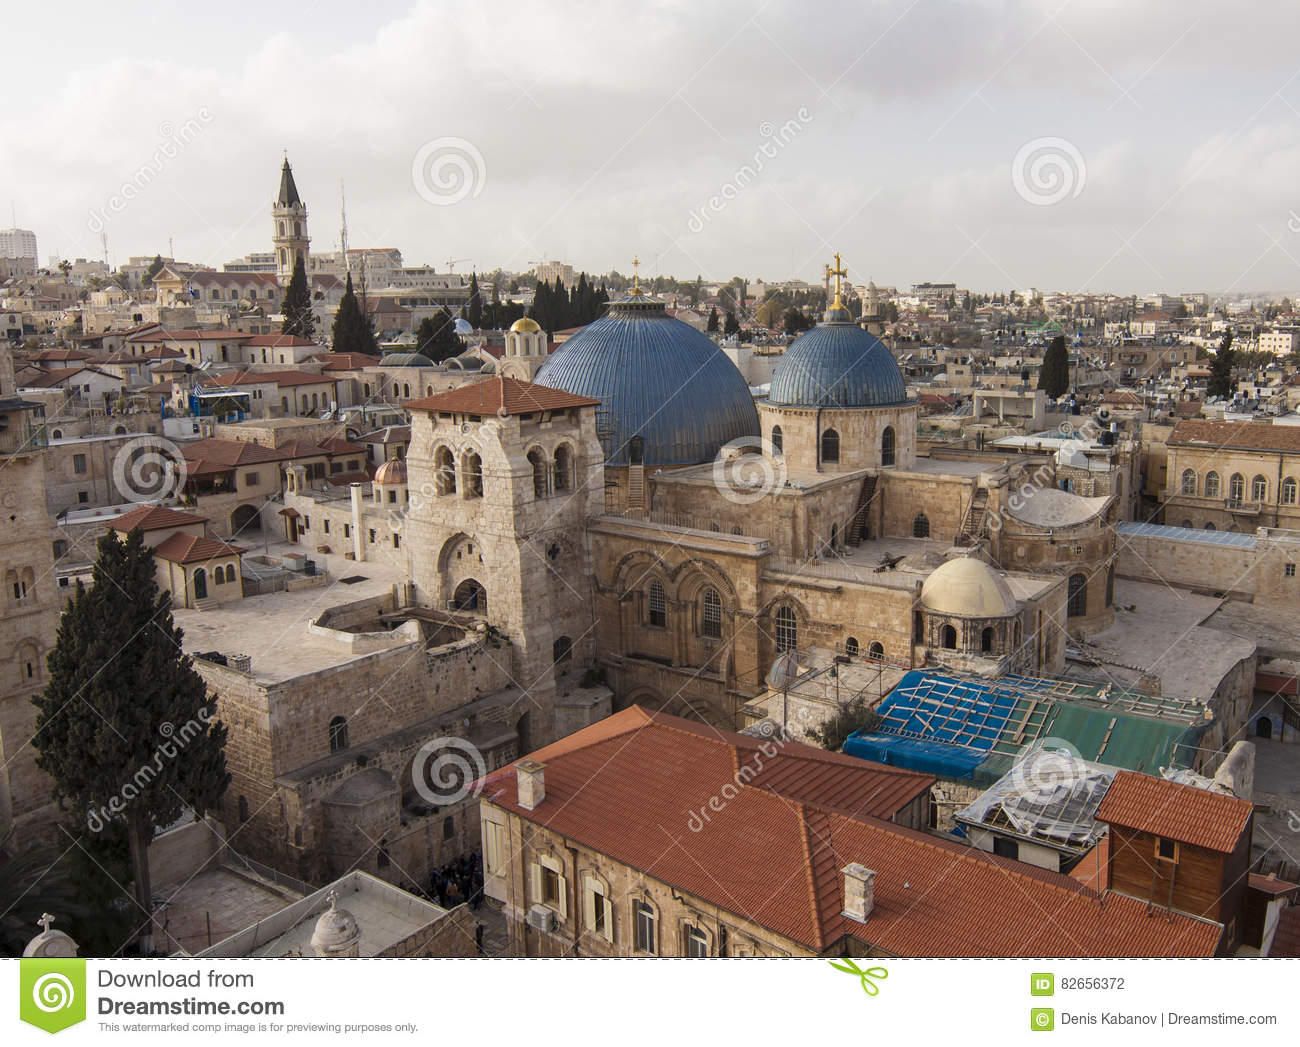 Israel Jerusalem Church Of The Holy Sepulchre With Old